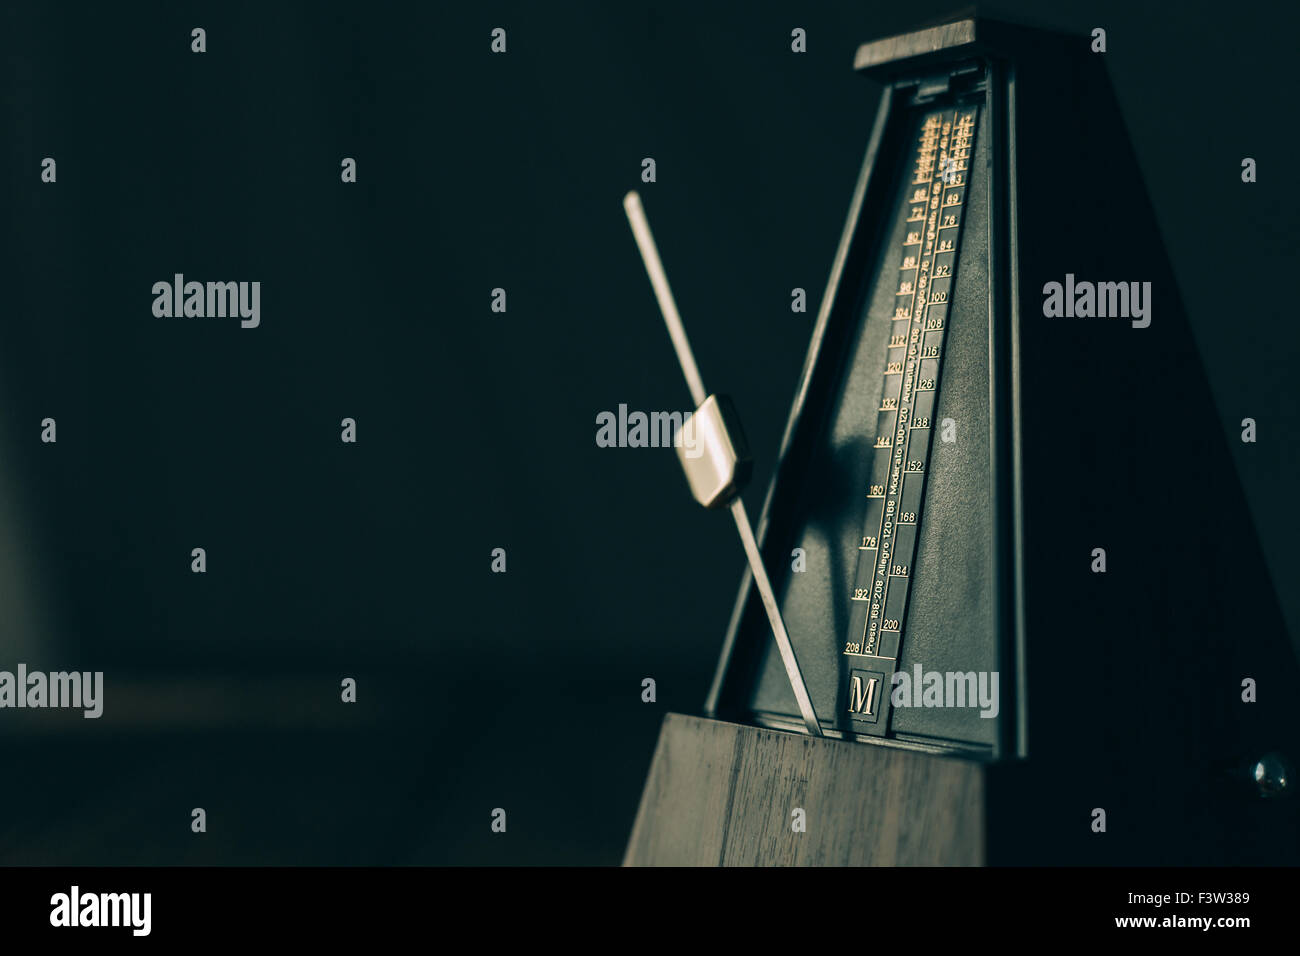 Vintage metronome, on a dark background. - Stock Image